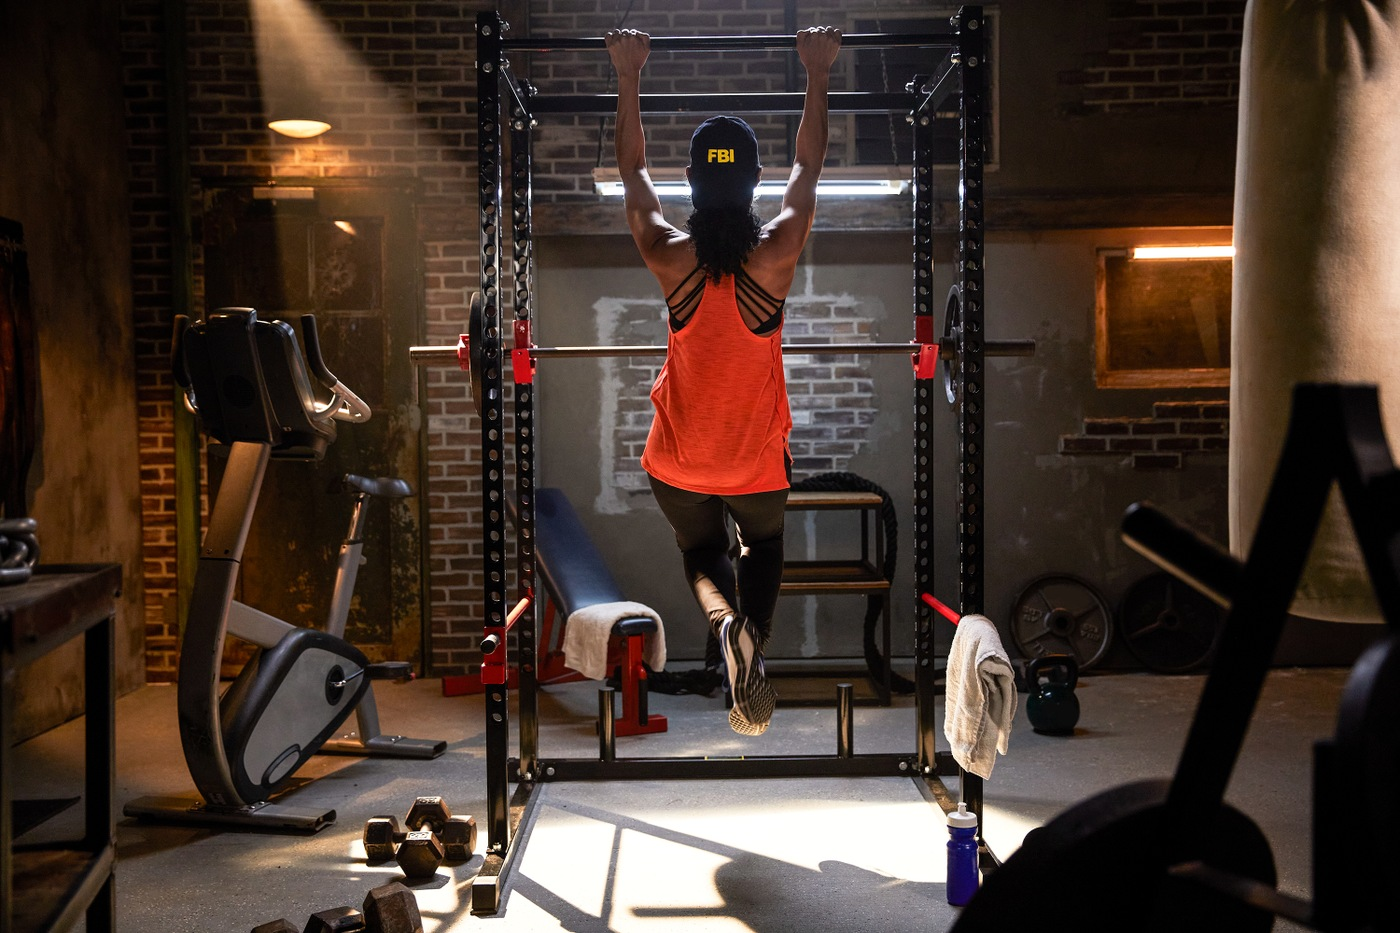 An FBI agent does a pull-up in the gym.